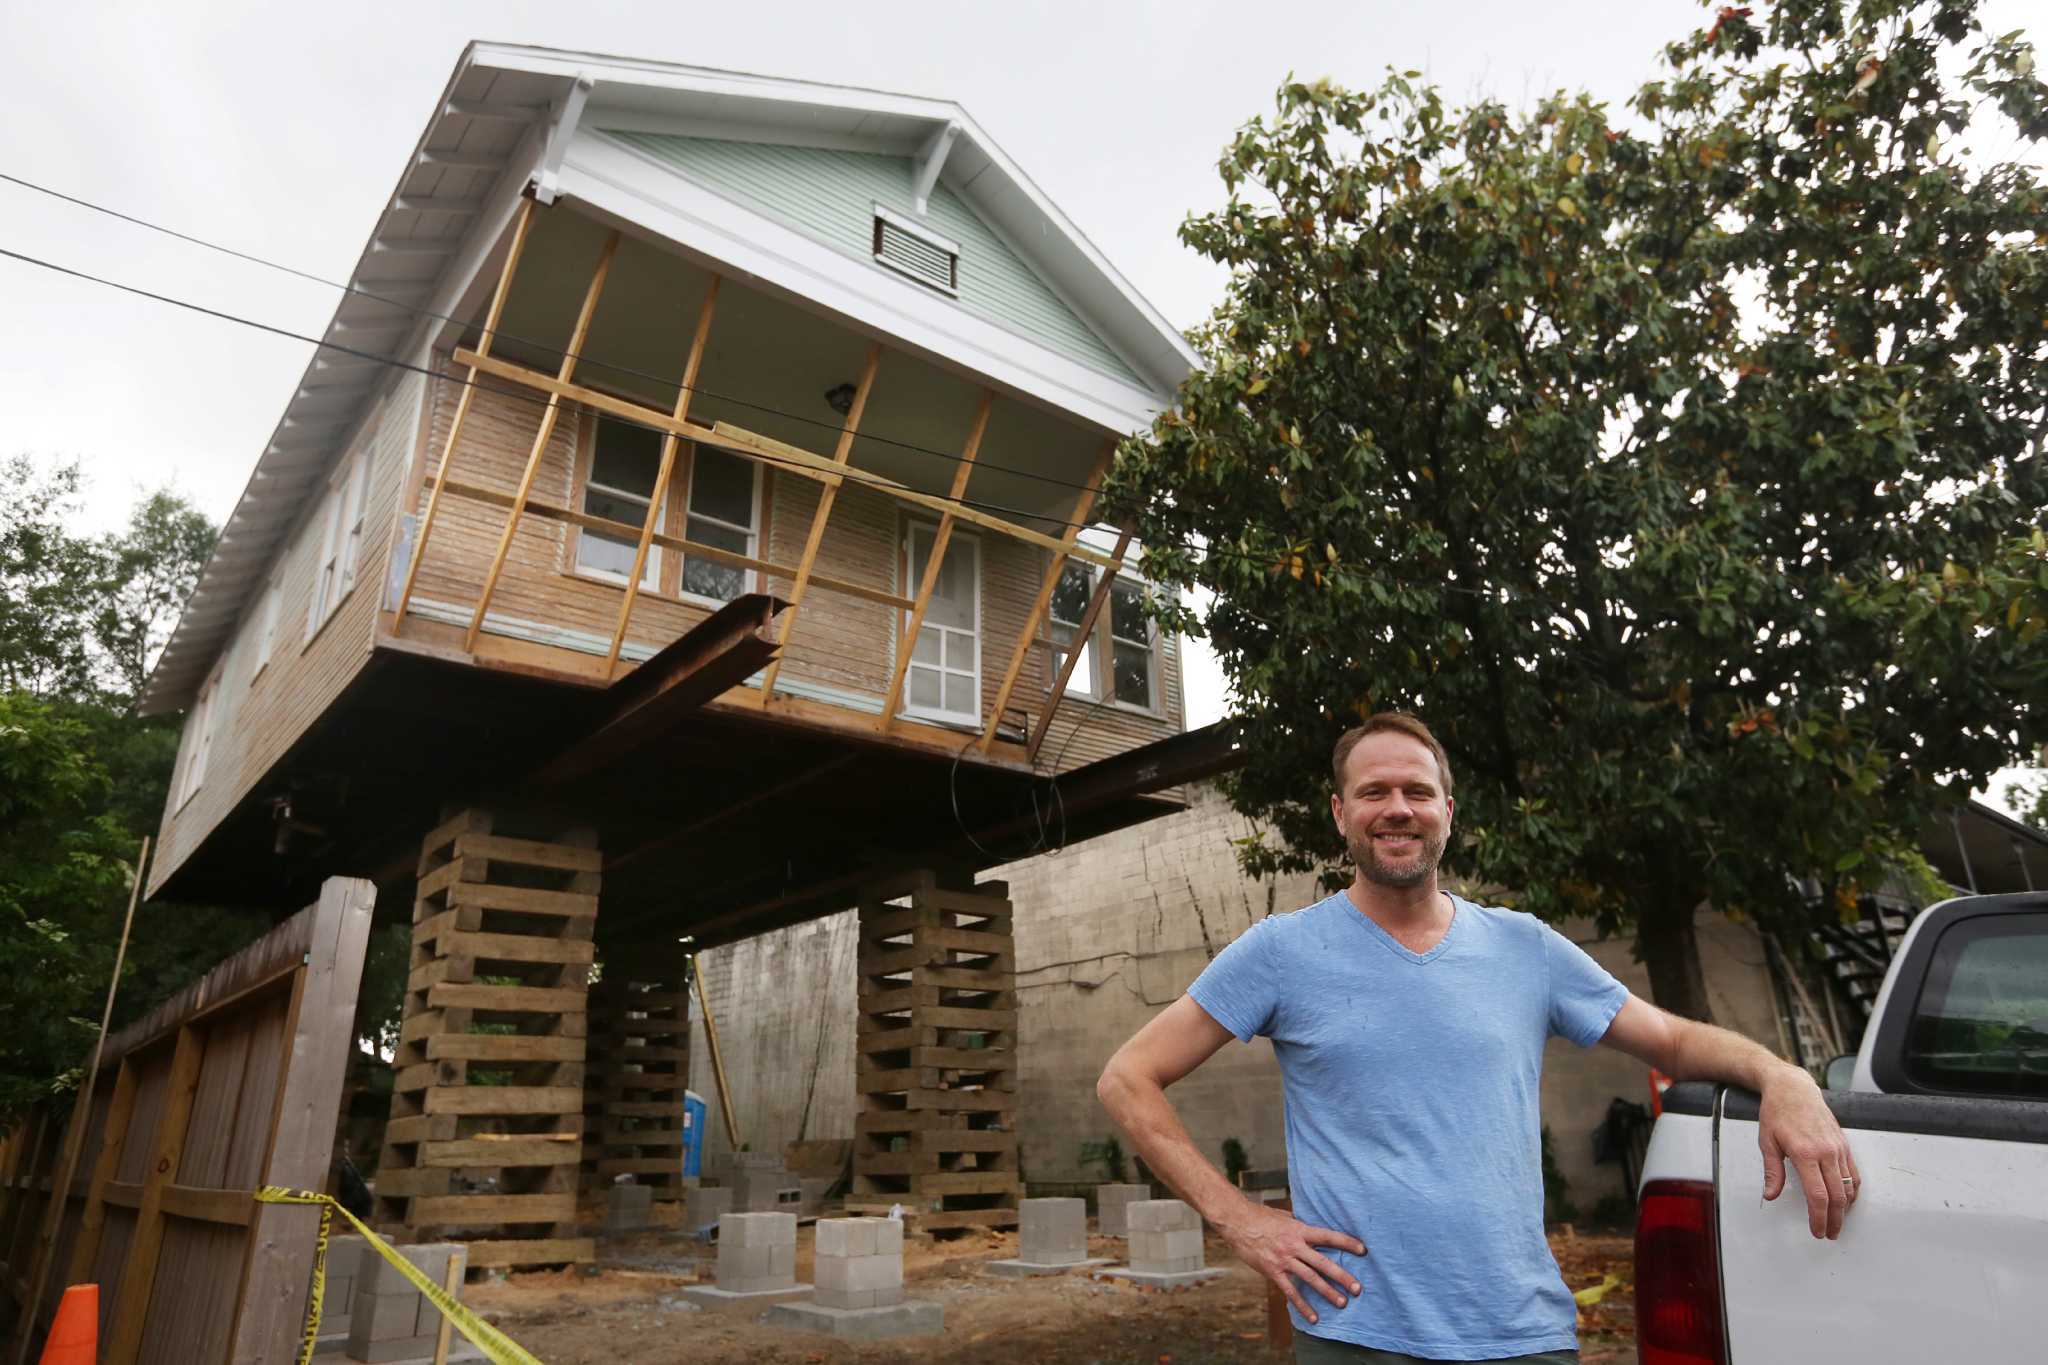 Delightful Heights Remodeler Jacks Up House To Add On Below Houston Chronicle